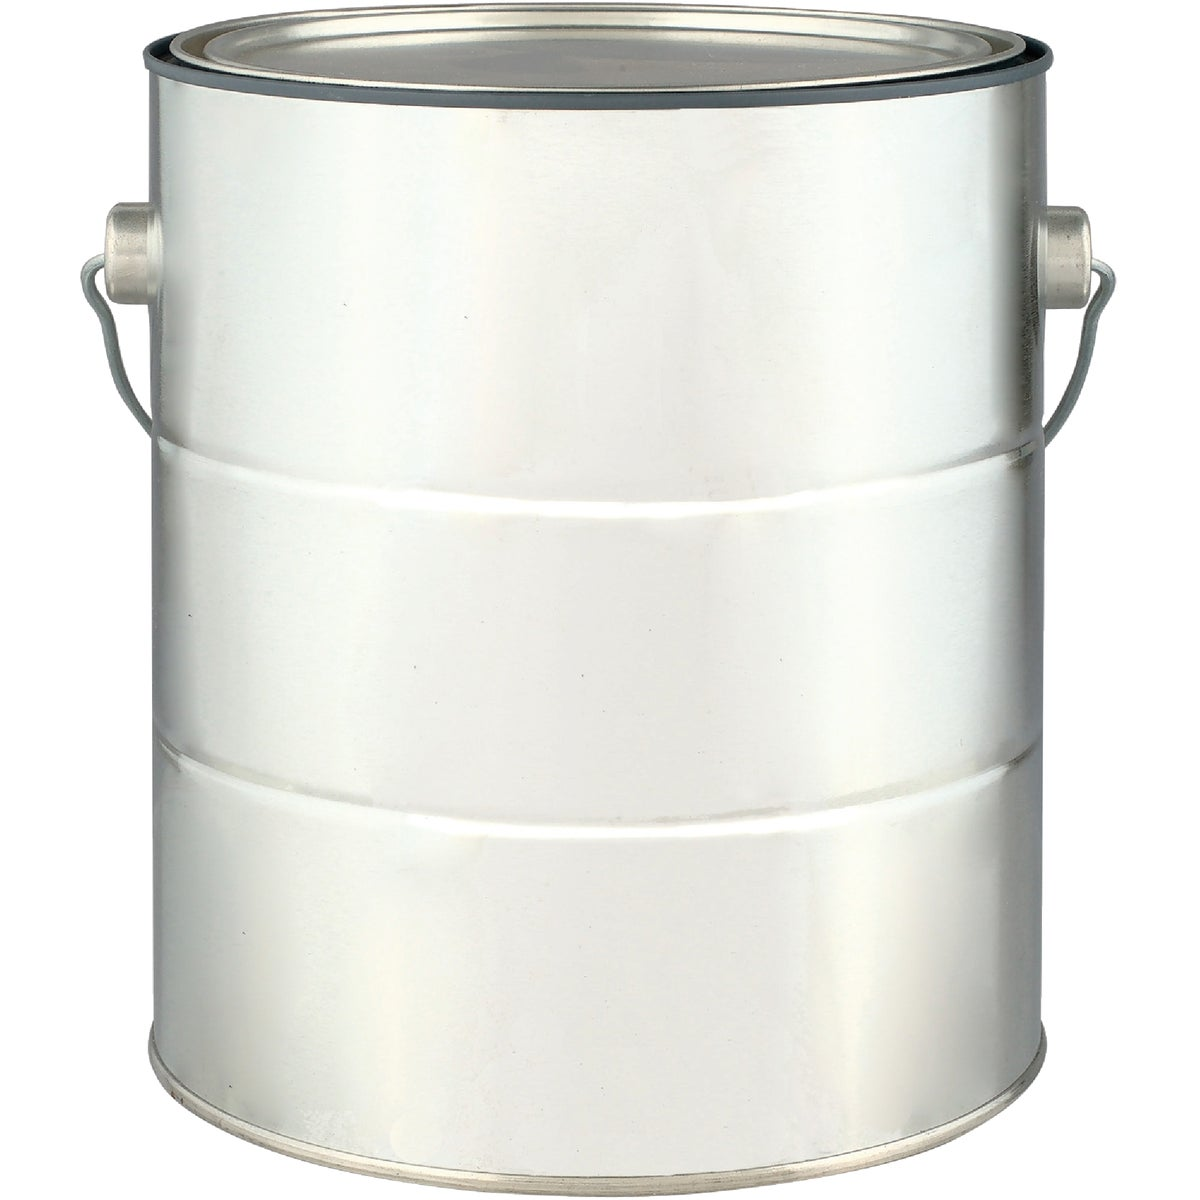 EMPTY 1 GALLON PAINT CAN - 007.0060689.000 by Valspar Corp